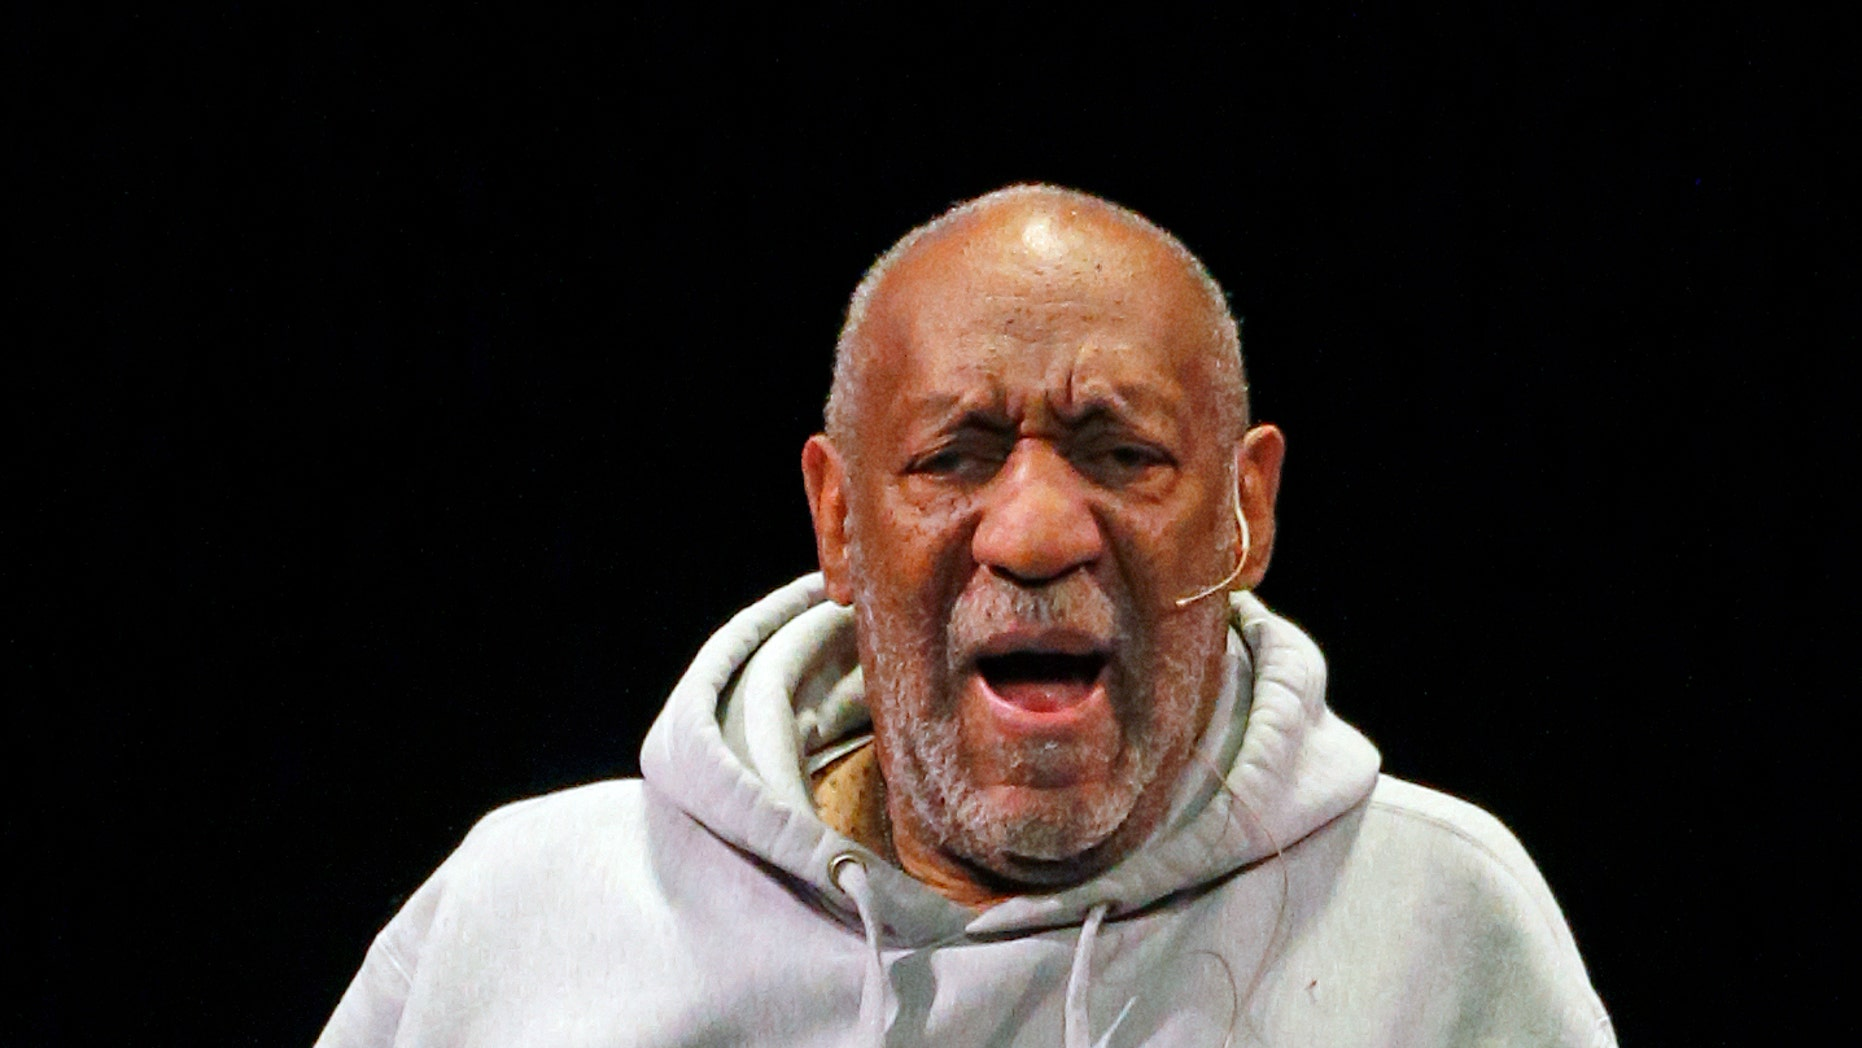 Jan 17, 2015. Bill Cosby performs at the Buell Theater in Denver.